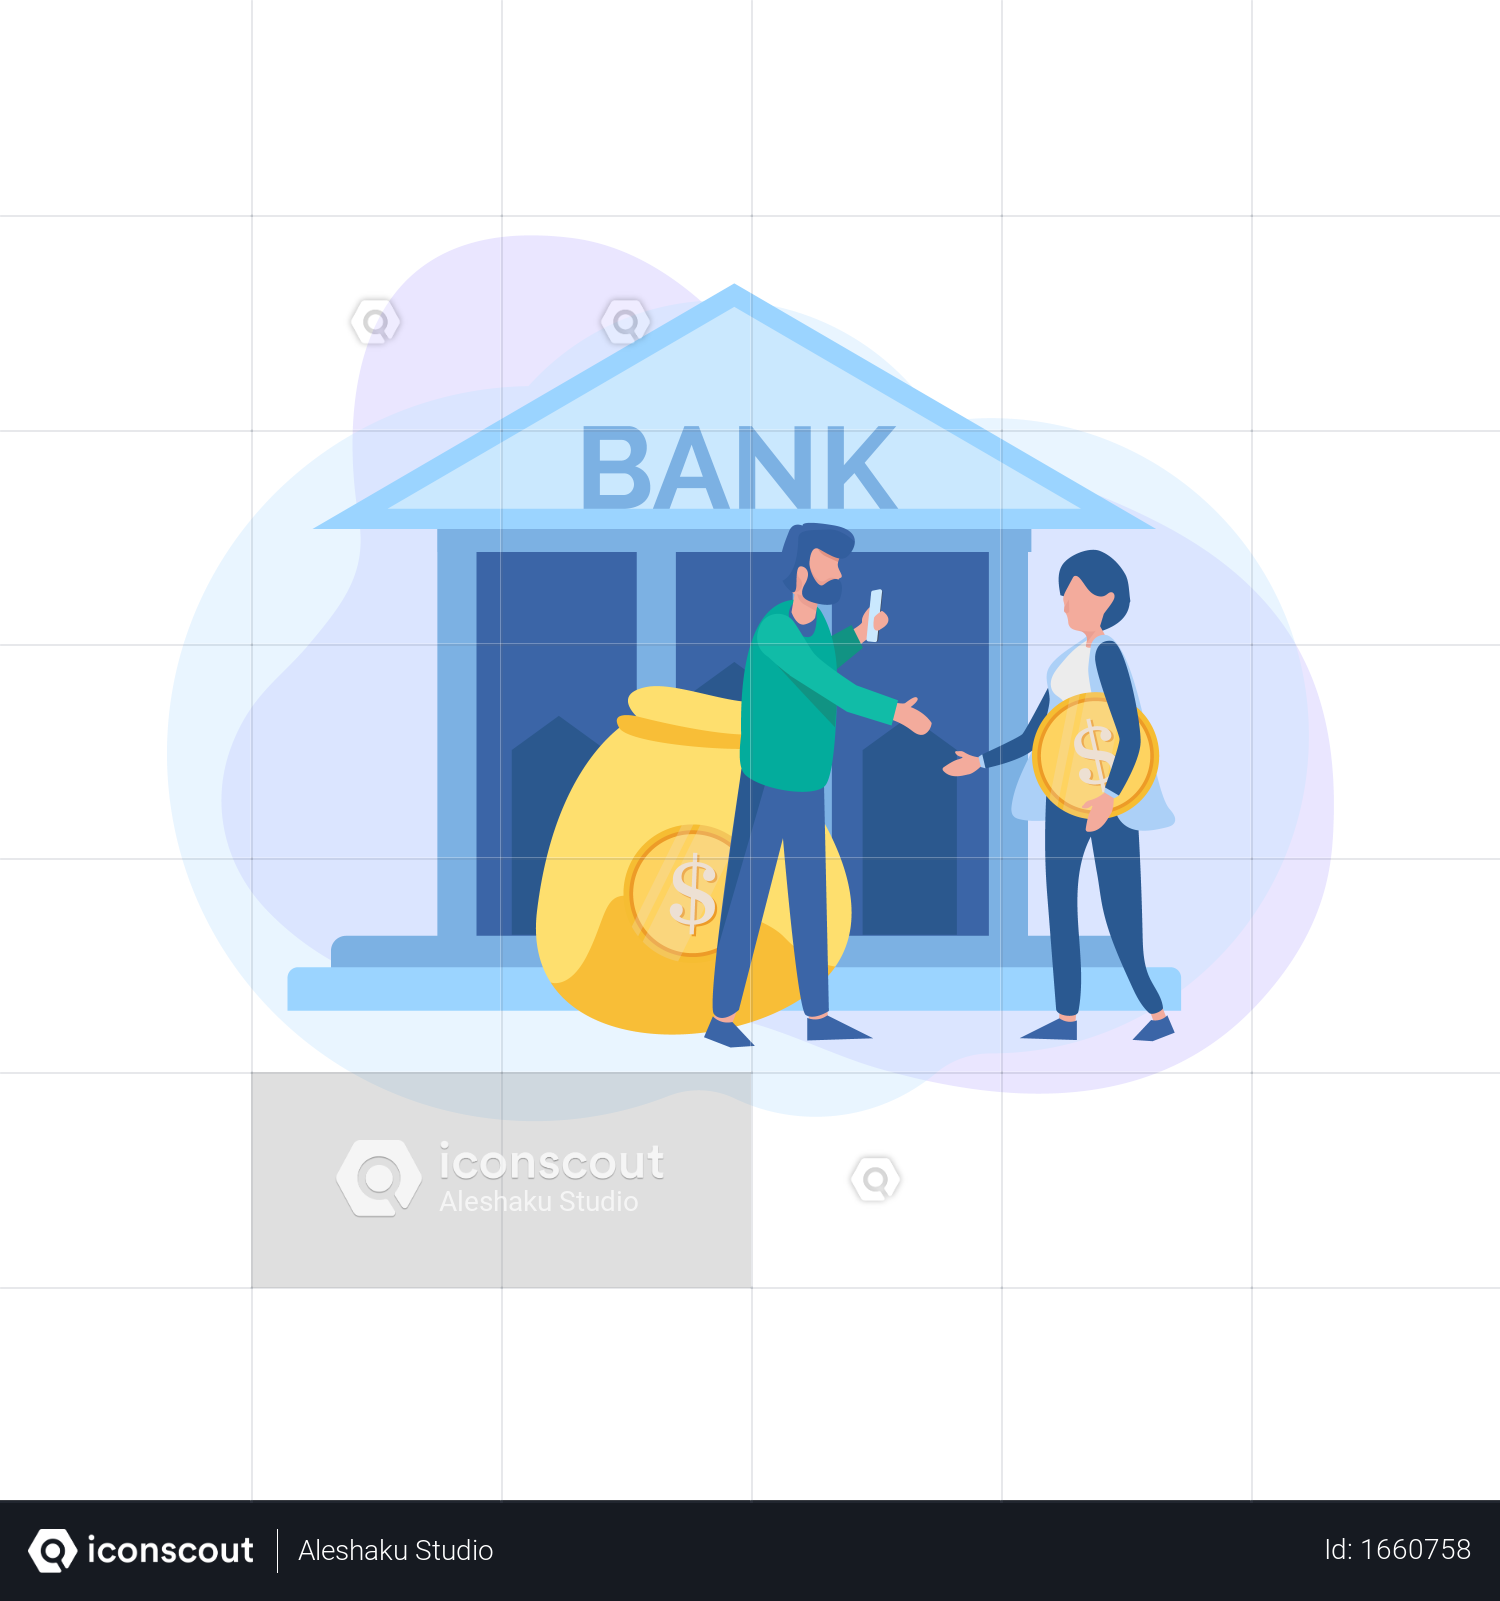 Premium Saving Money In Bank Is More Secure Illustration Download In Png Vector Format Saving Money Business Illustration Flat Design Illustration